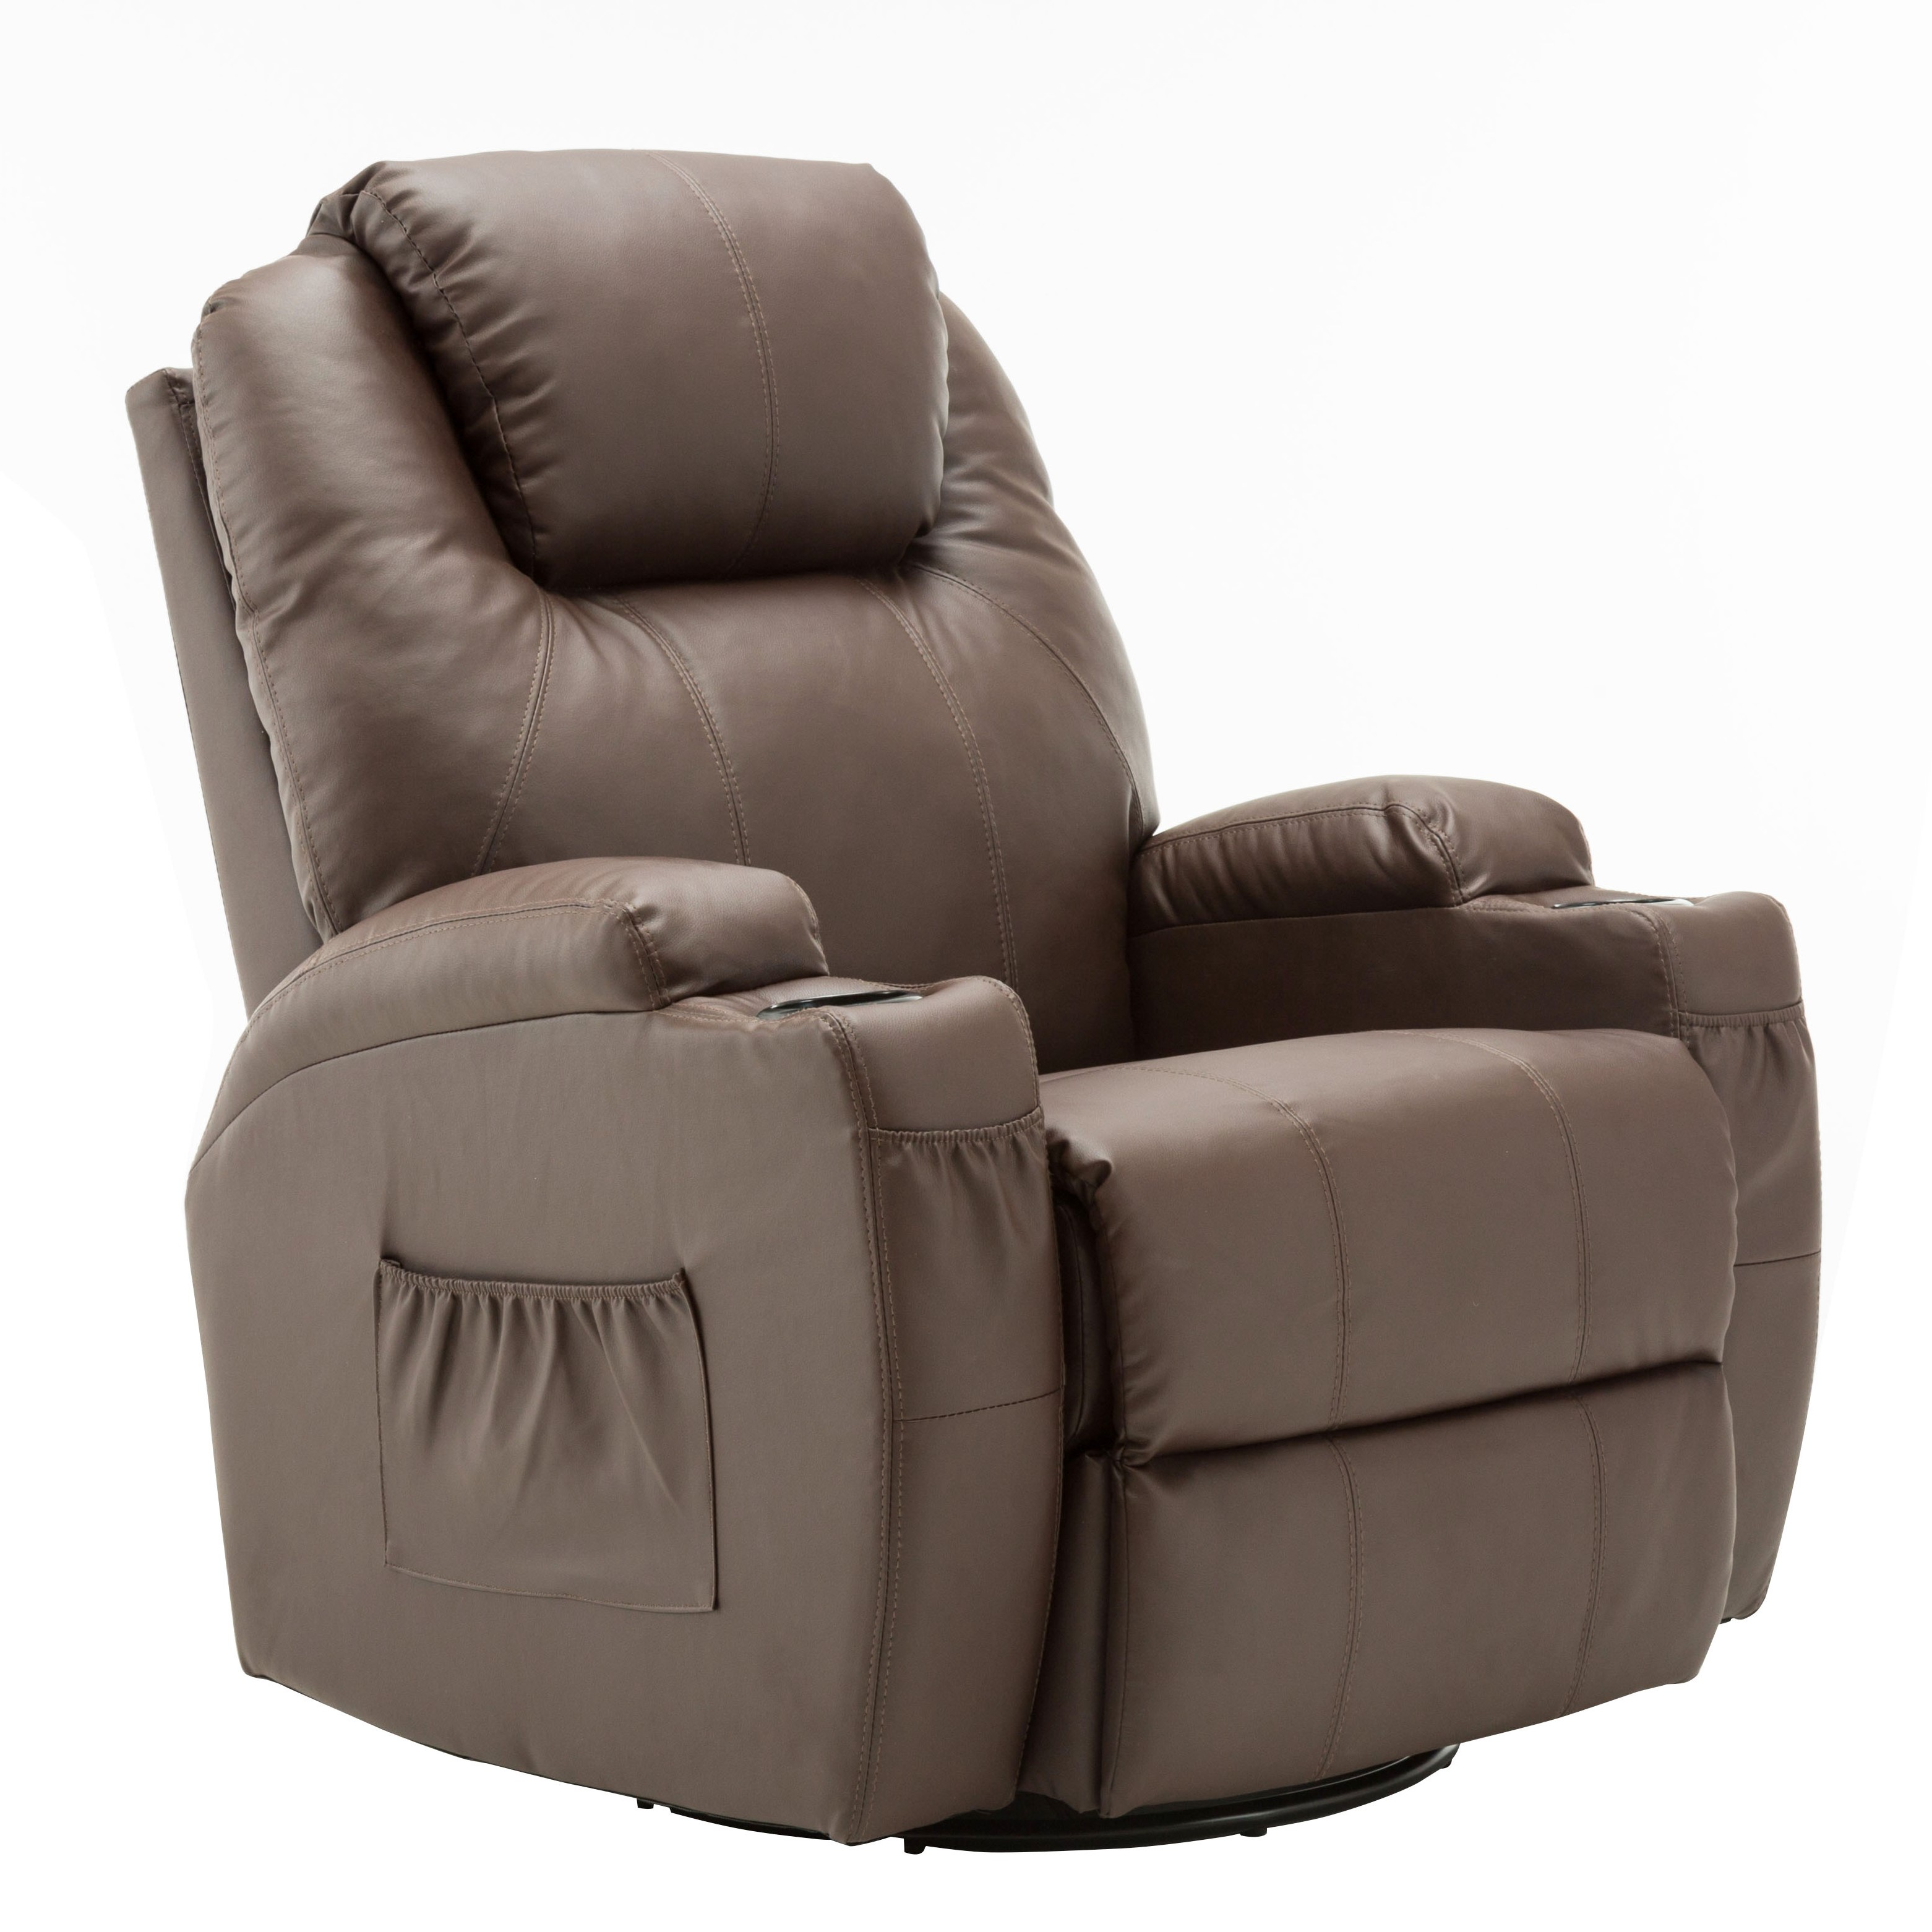 Massage Recliner Vibrating Sofa Heated Electric PU Leather Lounge Chair  8031 Brown